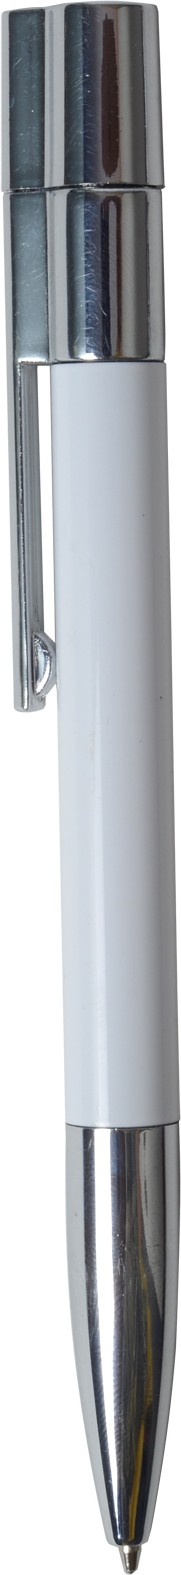 View Moda Xclusive PCP001 8 GB Pen Drive(White) Price Online(Moda Xclusive)